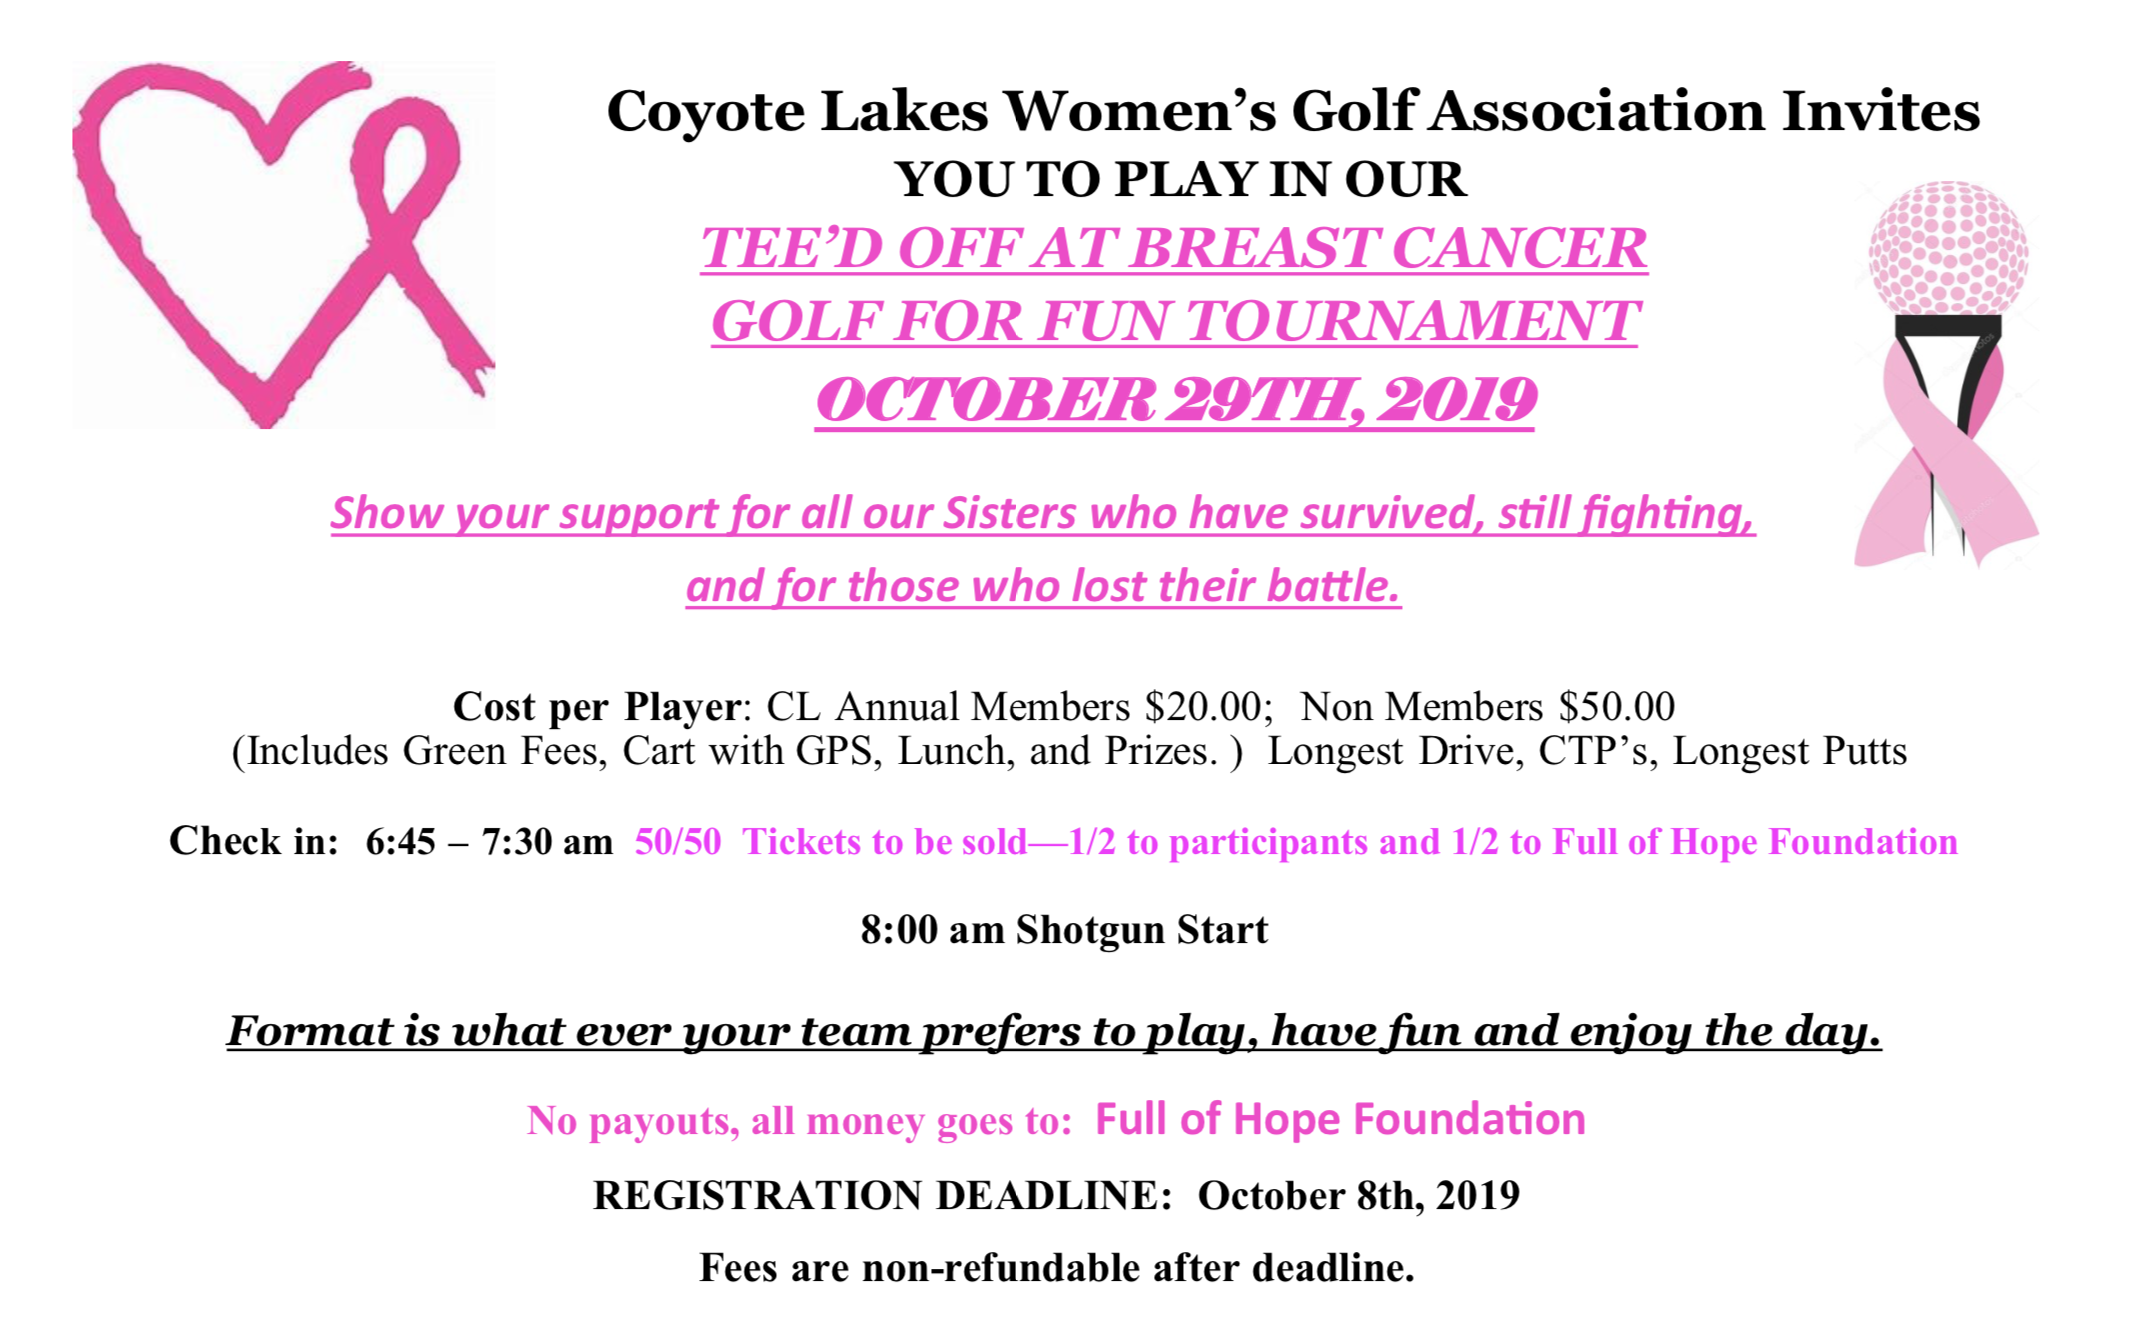 TEE'D OFF AT BREAST CANCER GOLF FOR FUN TOURNAMENT